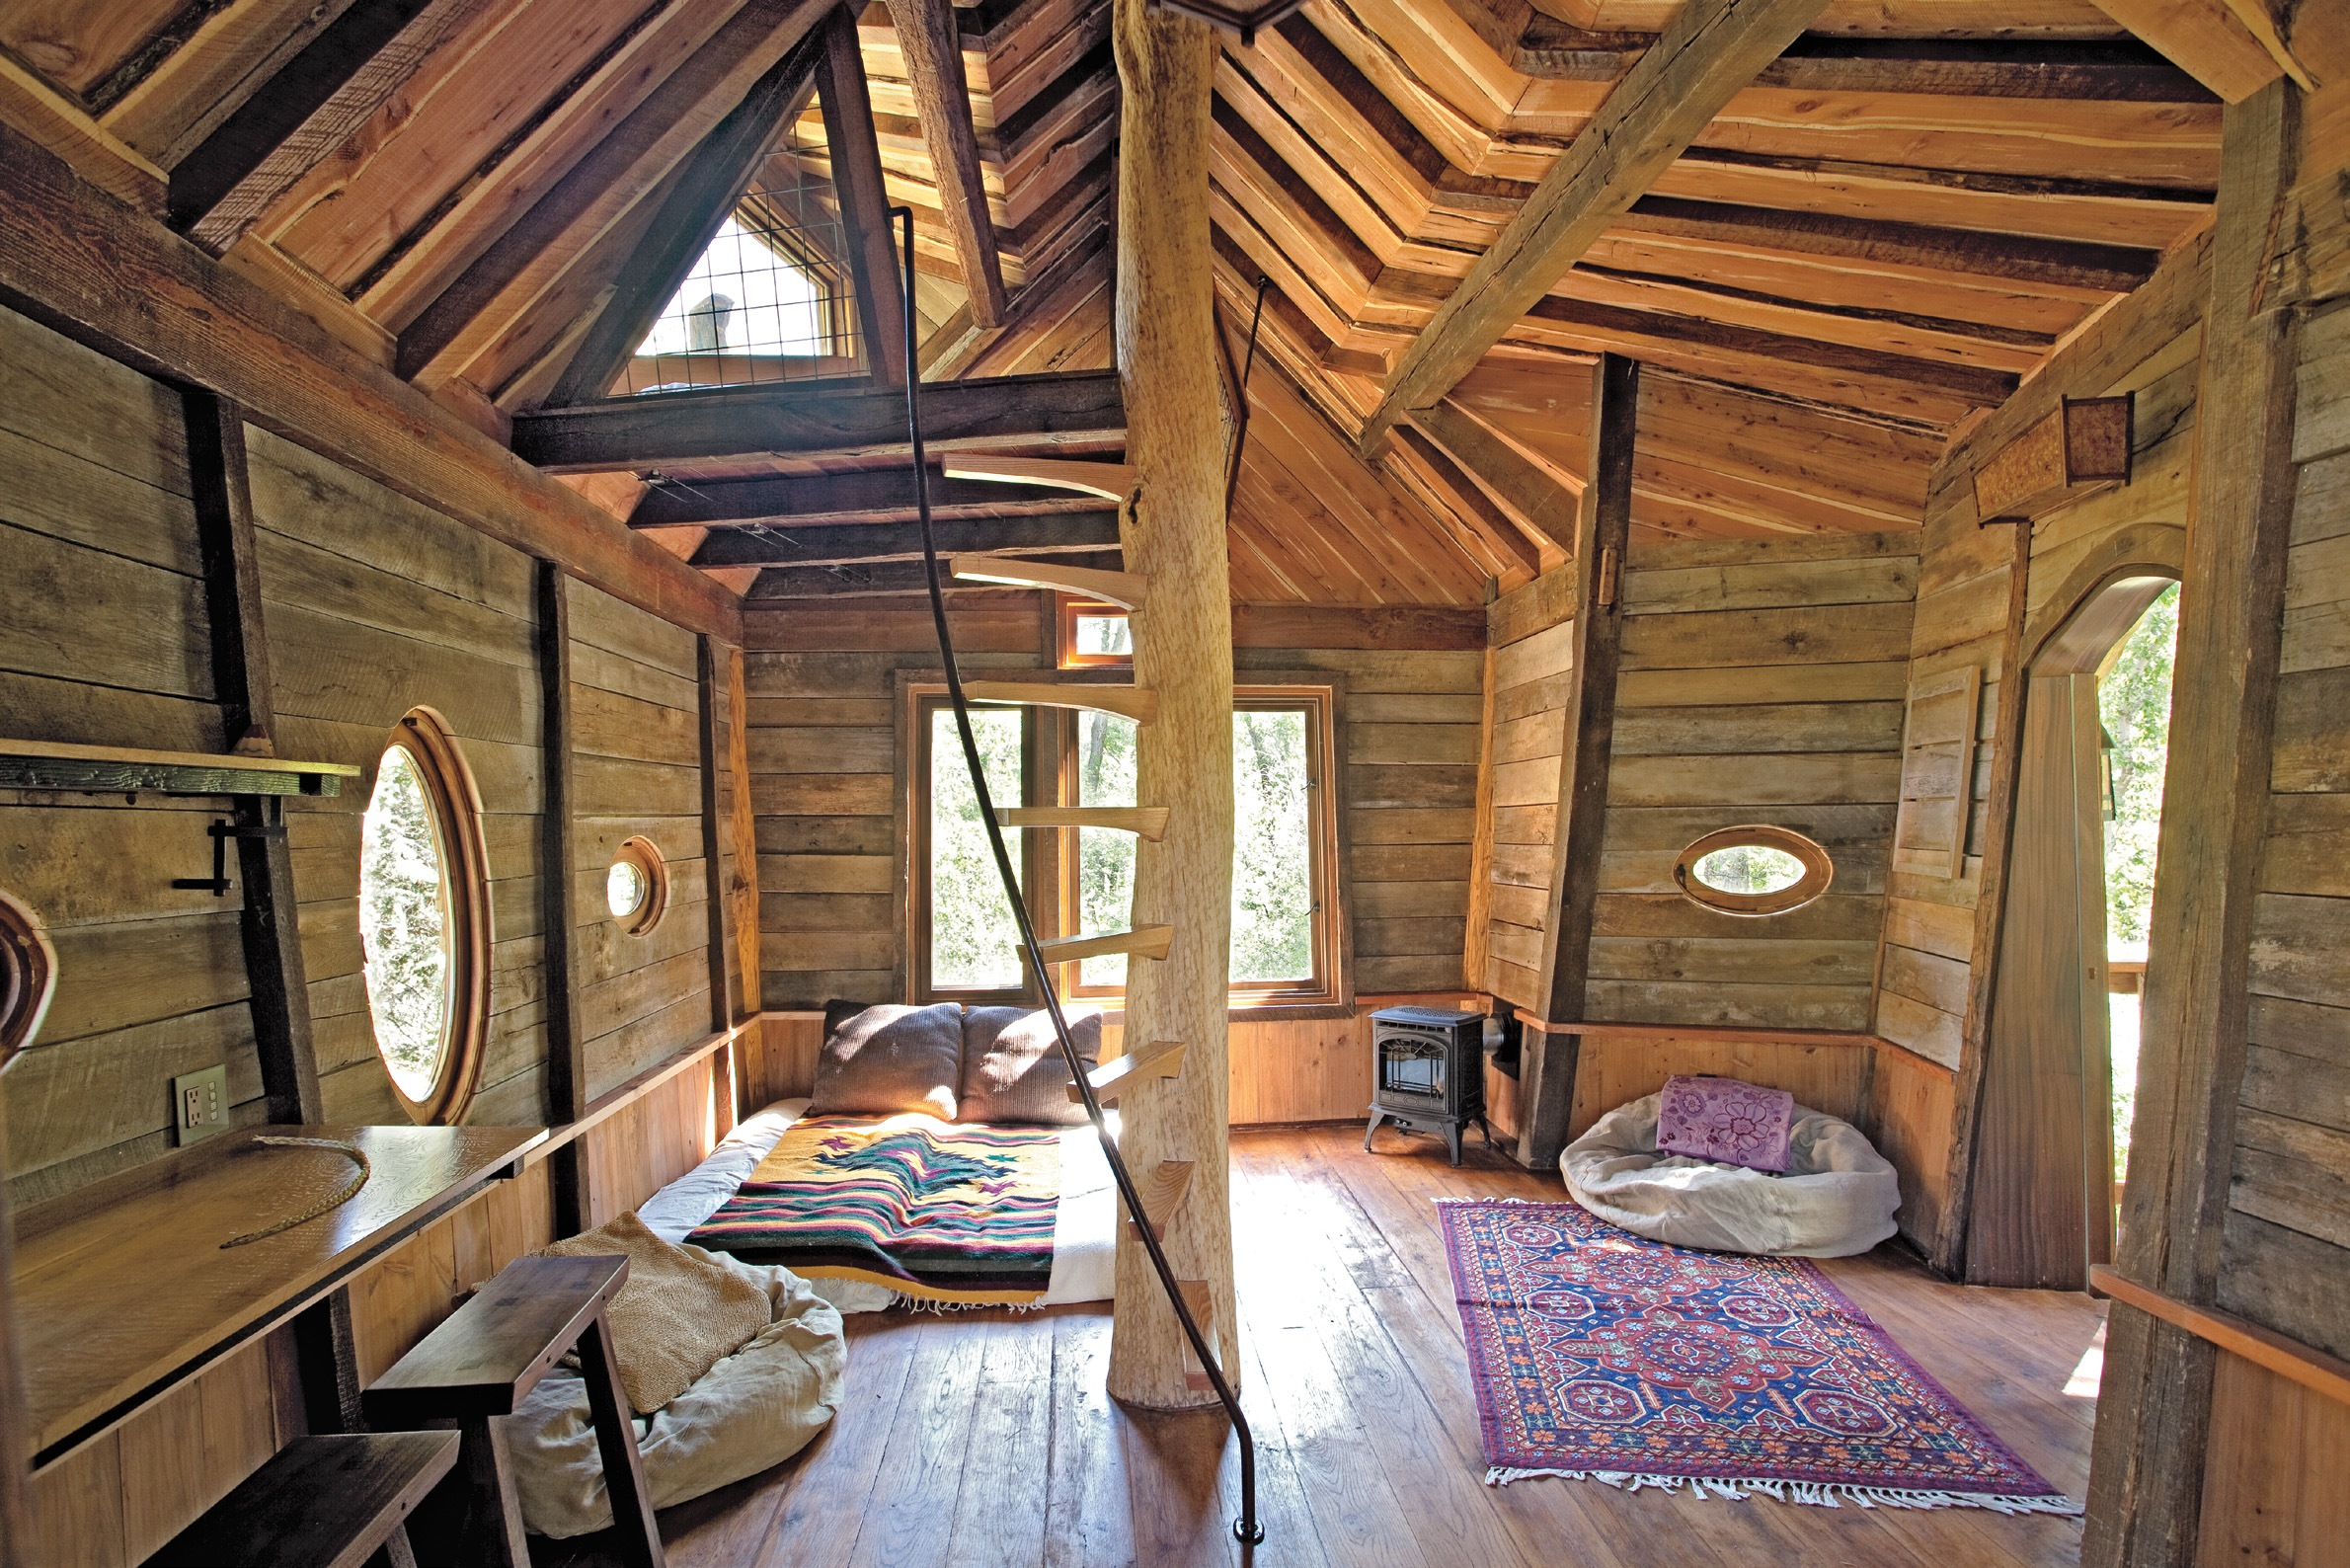 Tiny Homes, by Lloyd Kahn -- exclusive image gallery excerpt ... on small house floor plans, pallet tree house plans, pallet house building plans, wood pallet house plans, pallet house floor plans, post and beam carriage house plans, pallet dog house plans, tiny shed house plans, pallet chicken house plans, pallet house design plans,